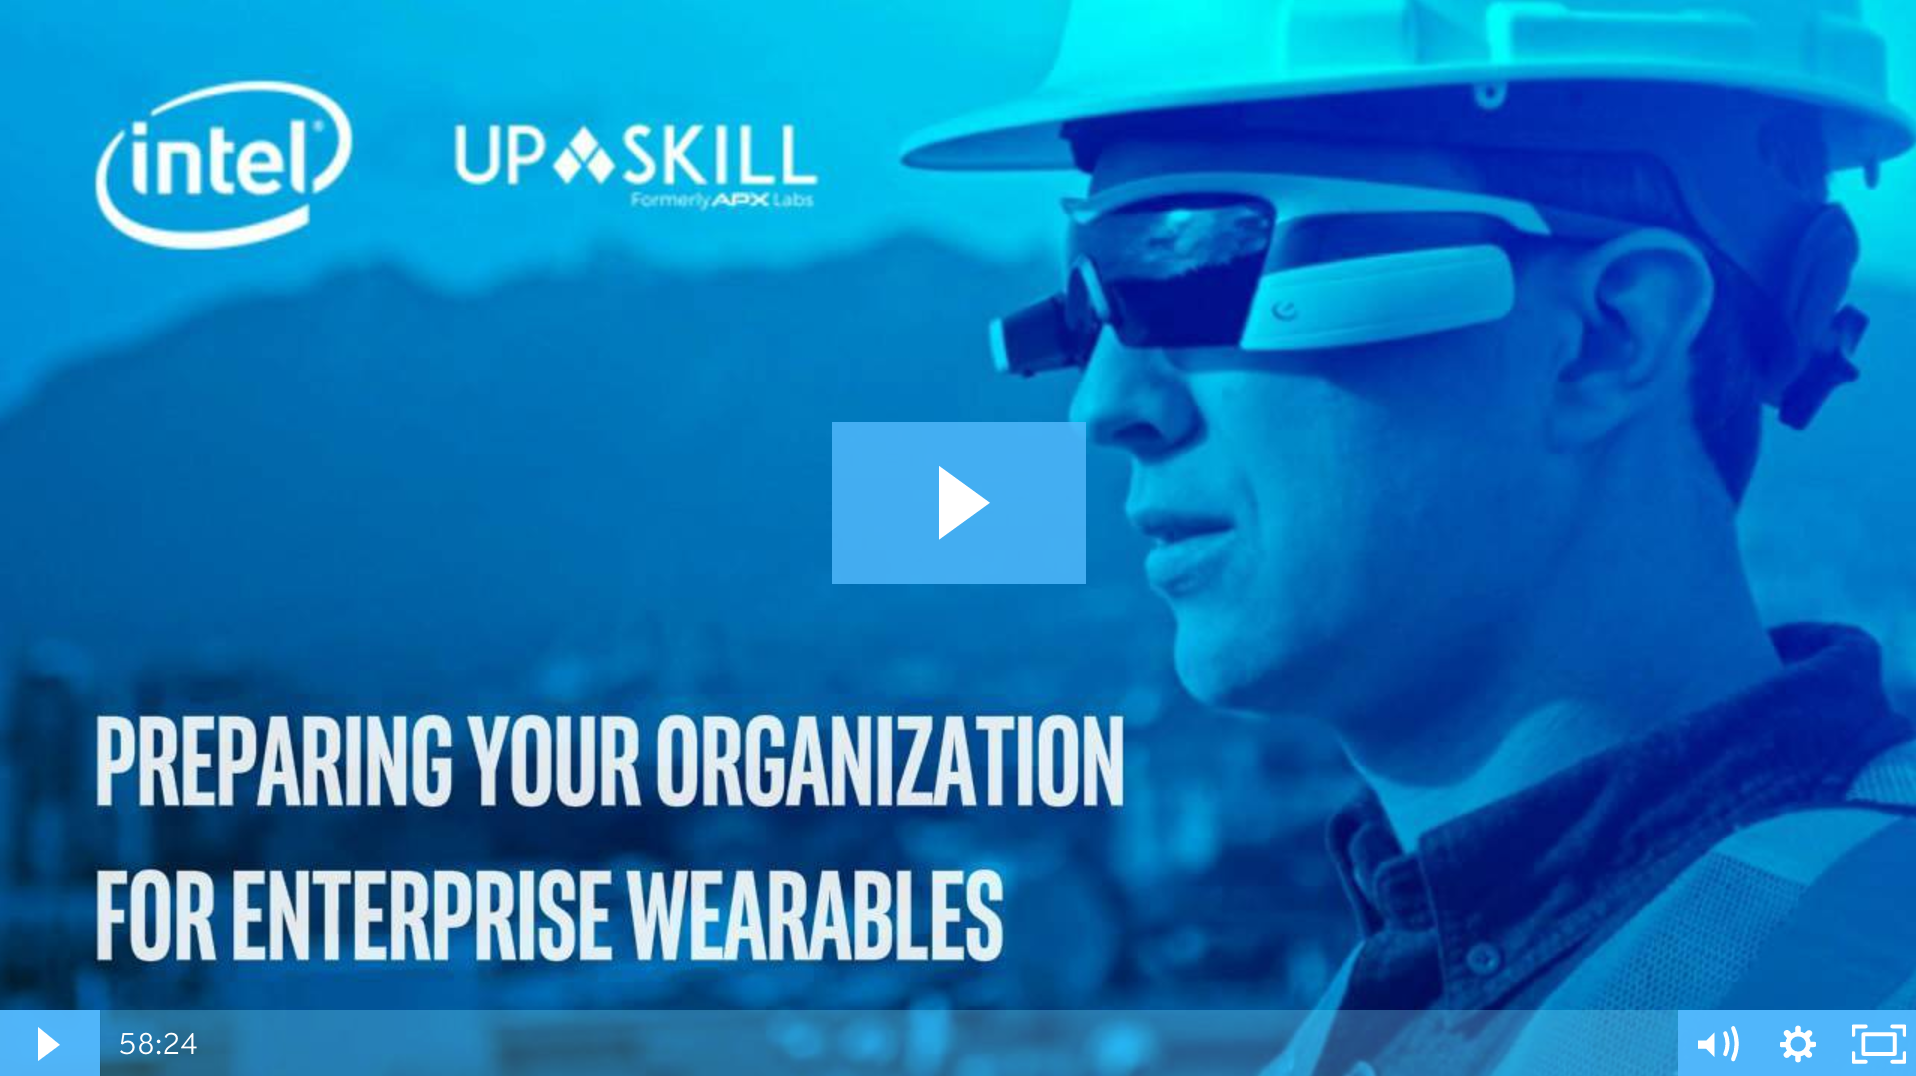 Preparing your organization for enterprise wearables